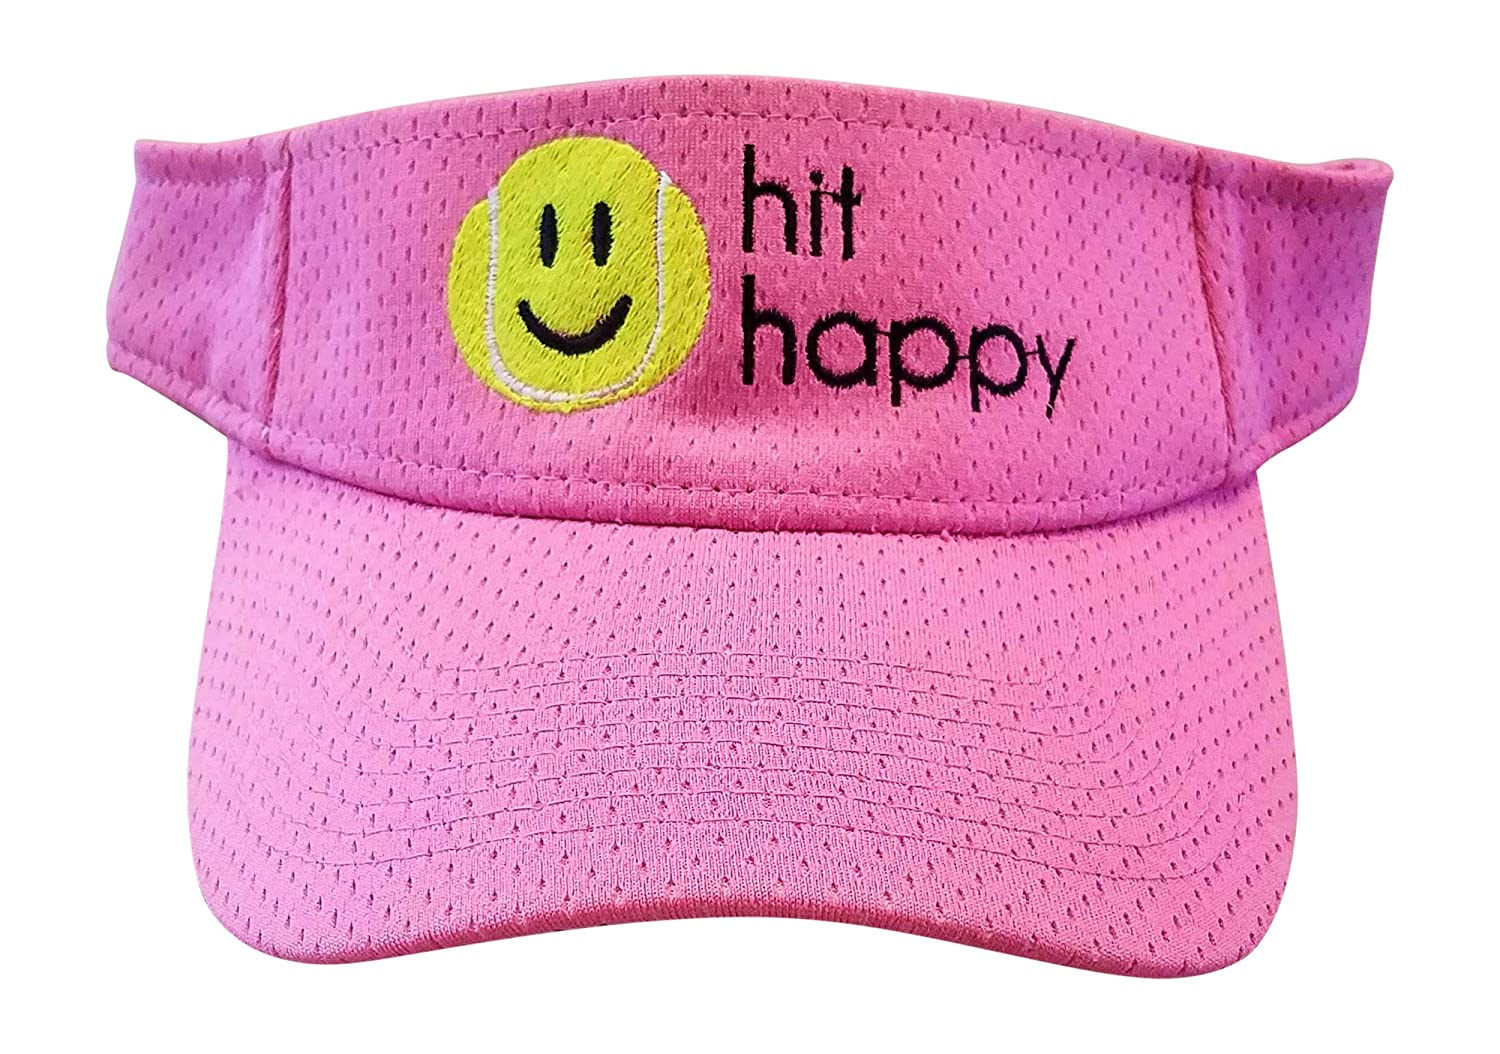 Amazon.com: Tennis Visor Hit Happy, Adjustable Strap, Perfect for On The Court Or Off (Black): Clothing